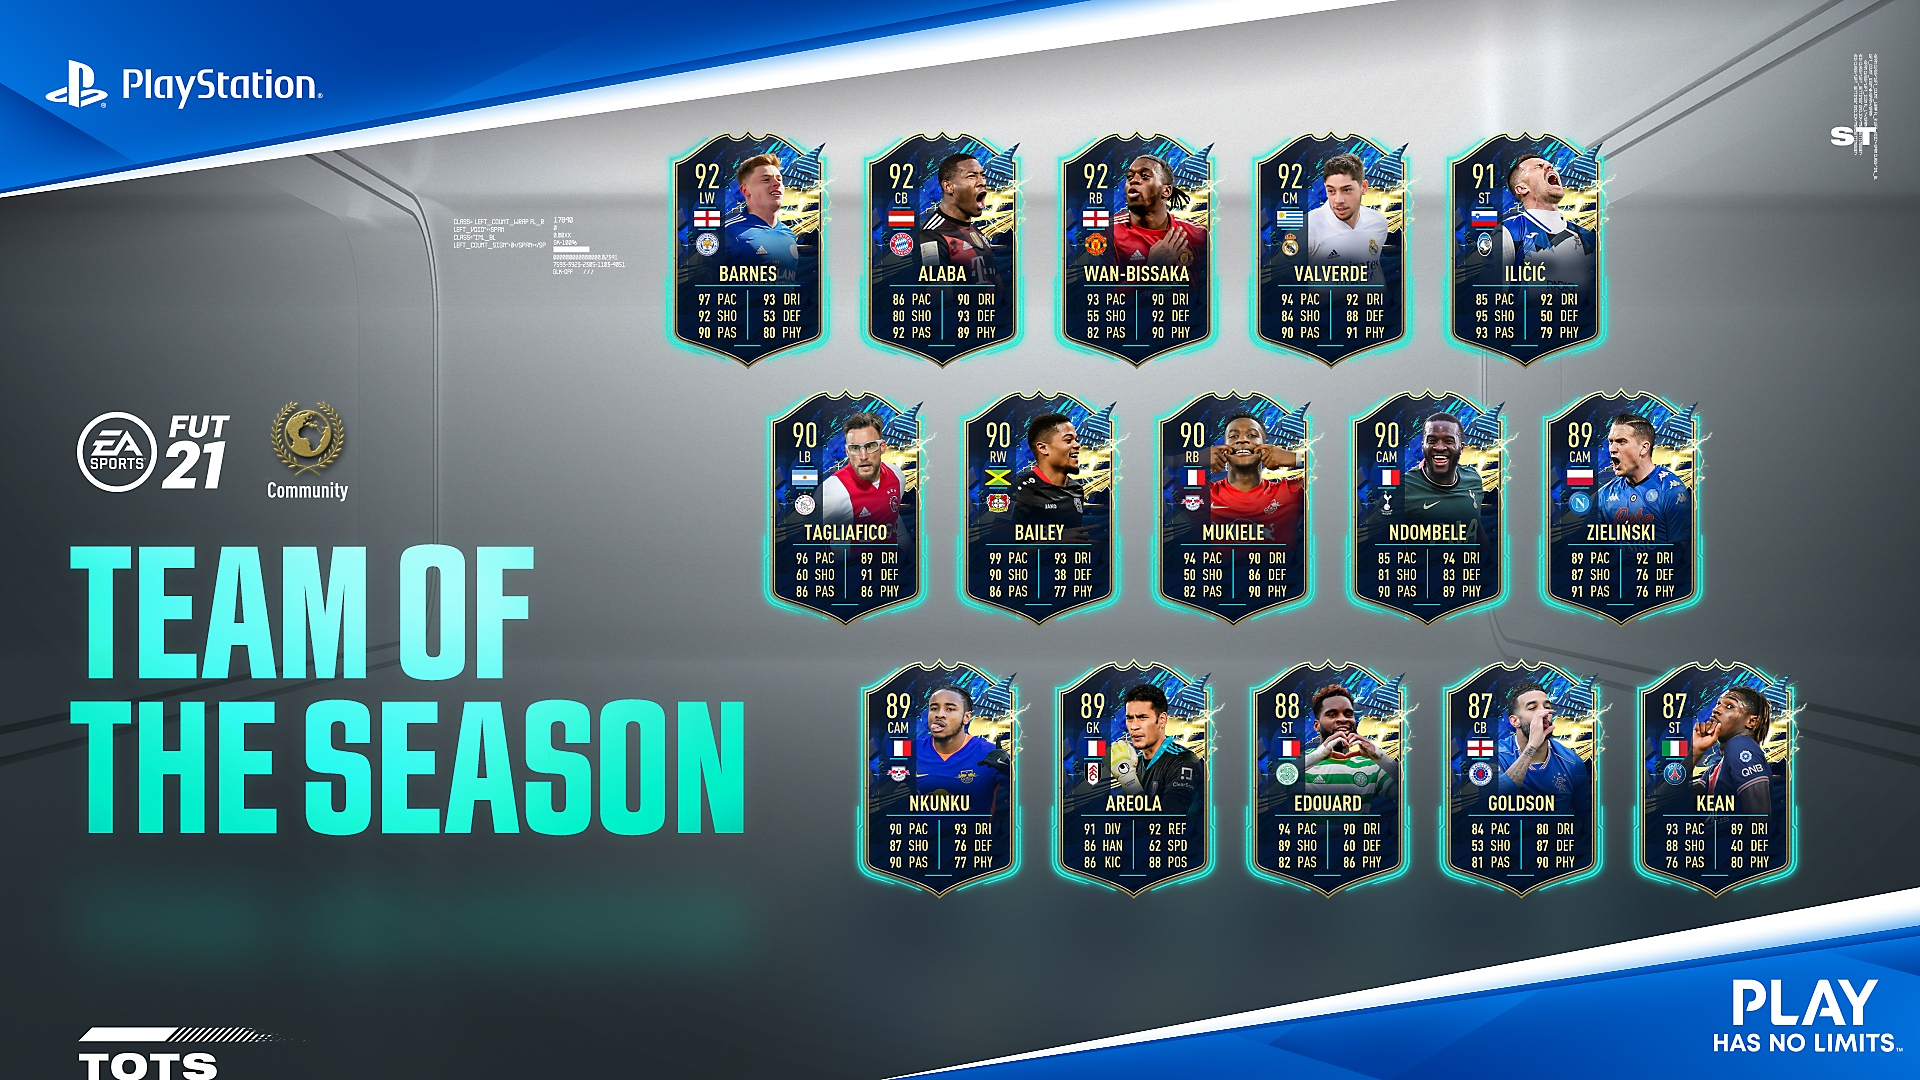 FIFA Ultimate Team - Team of the season